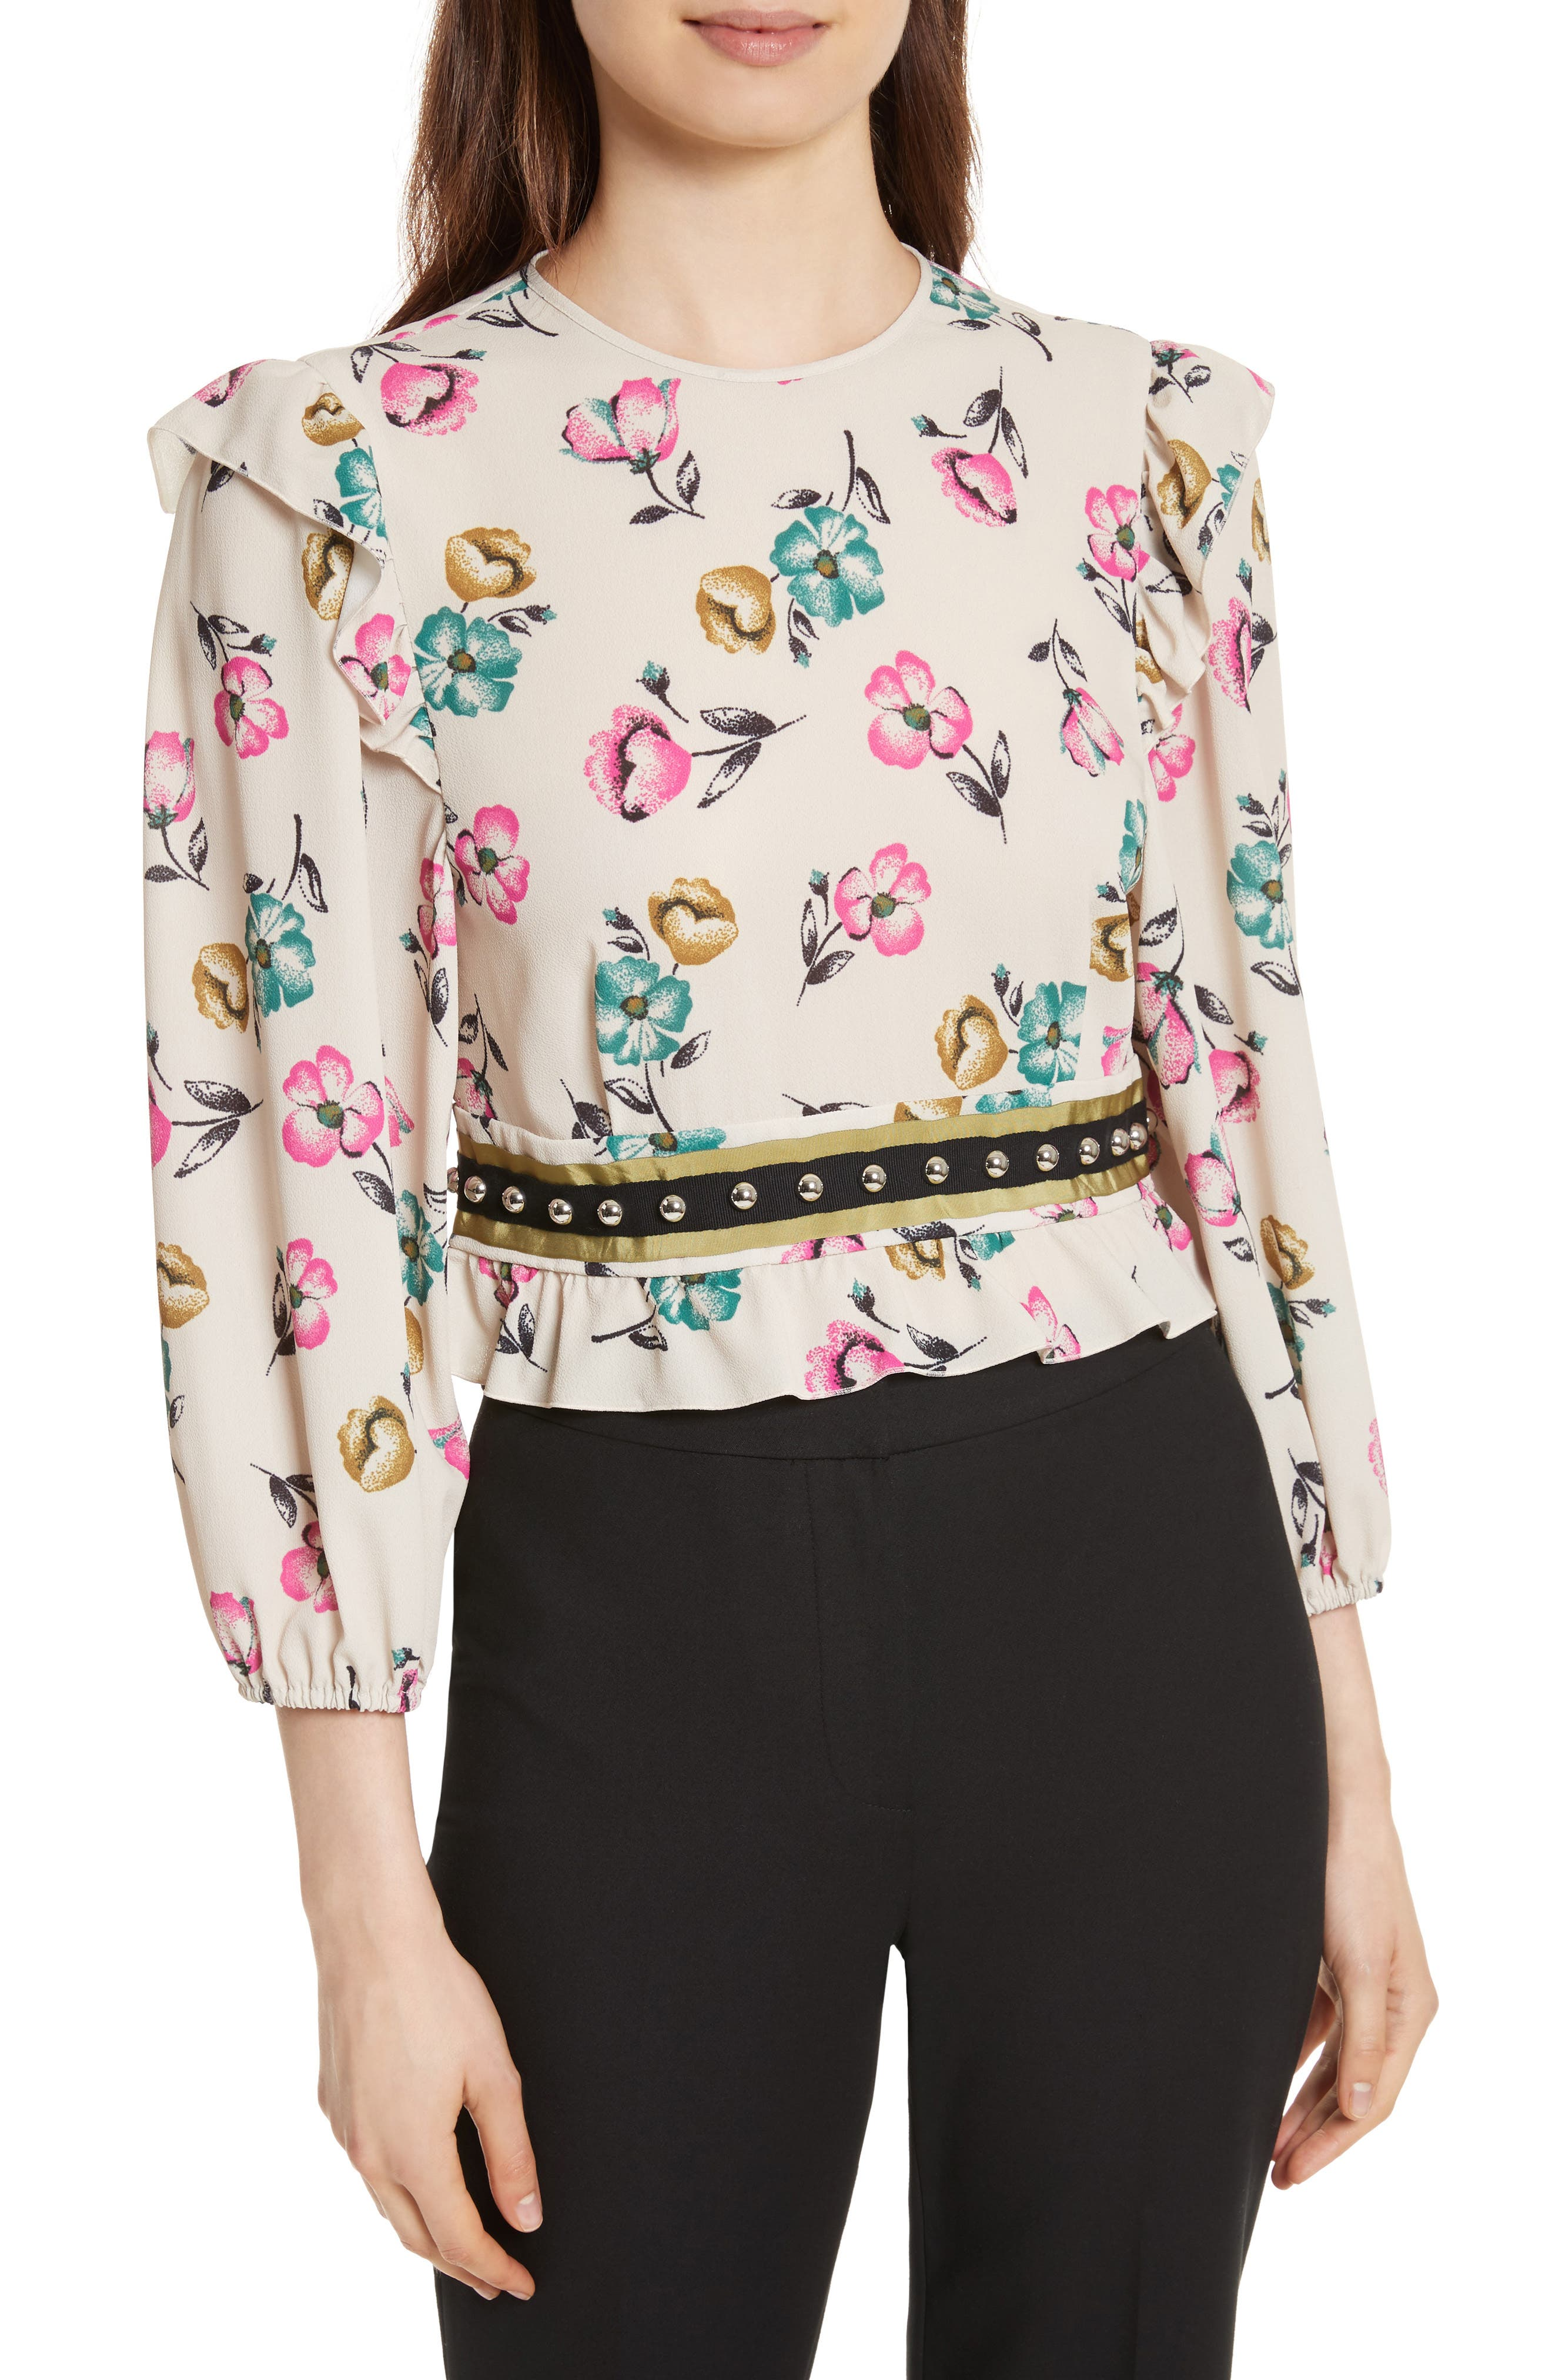 Alternate Image 1 Selected - RED Valentino Anemone Floral Print Blouse